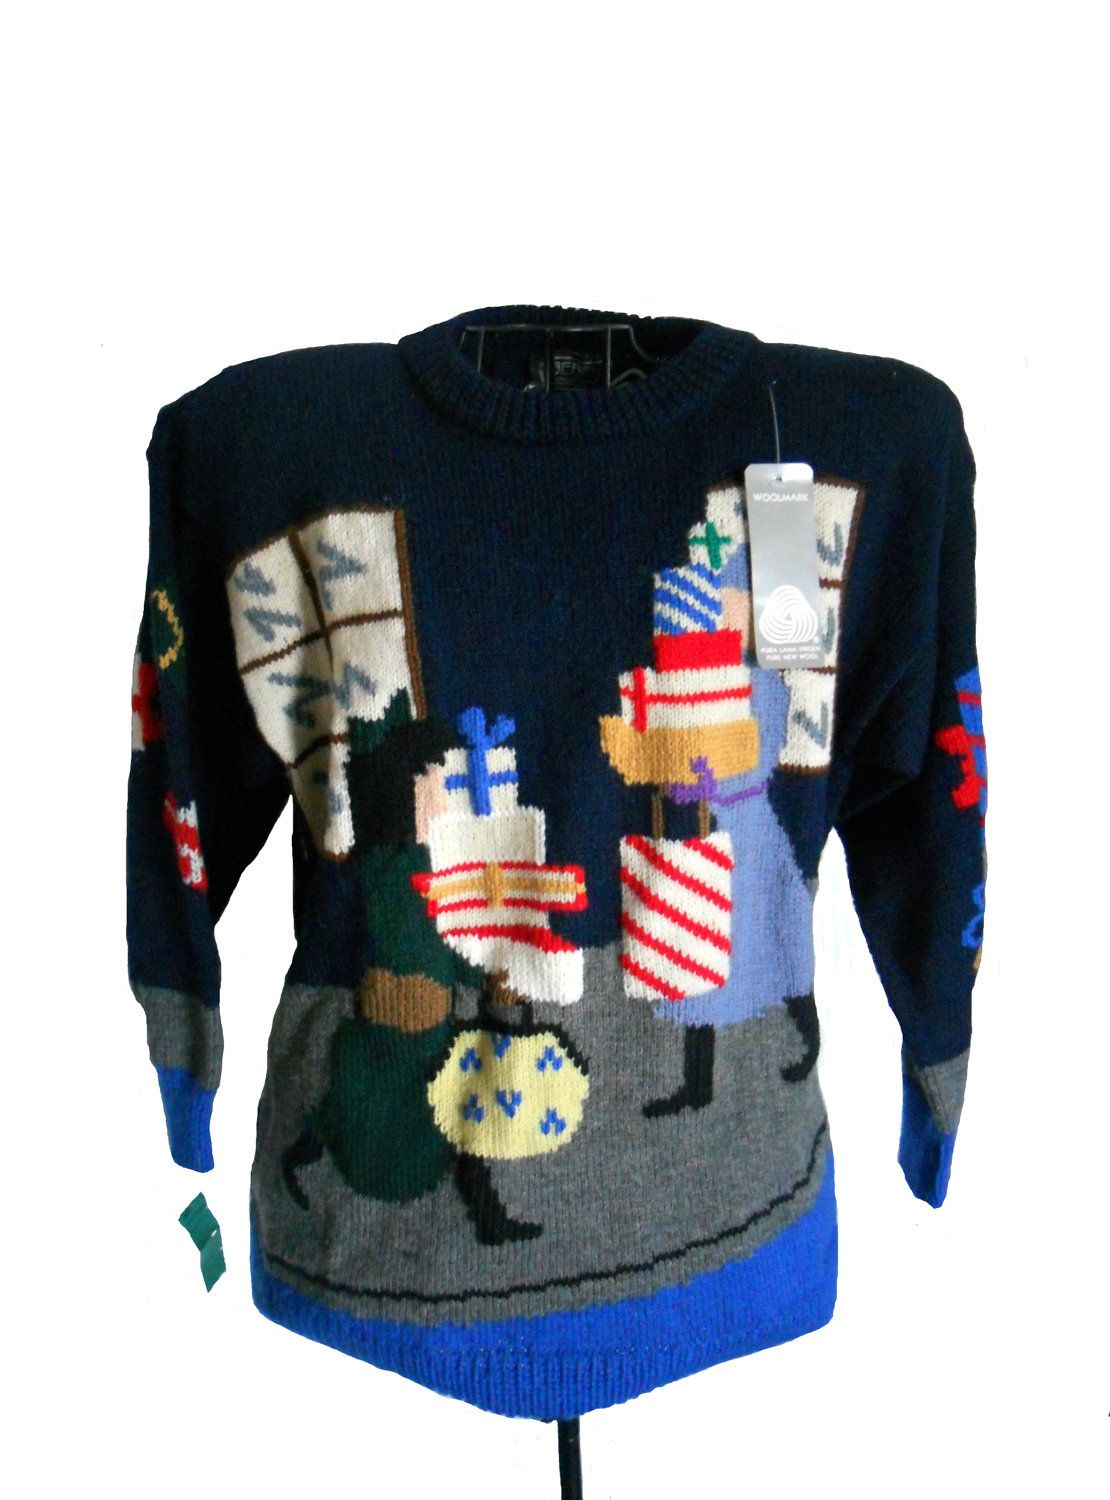 Vintage Ugly Christmas Sweater - Oversized Berek Brand - Navy and ...